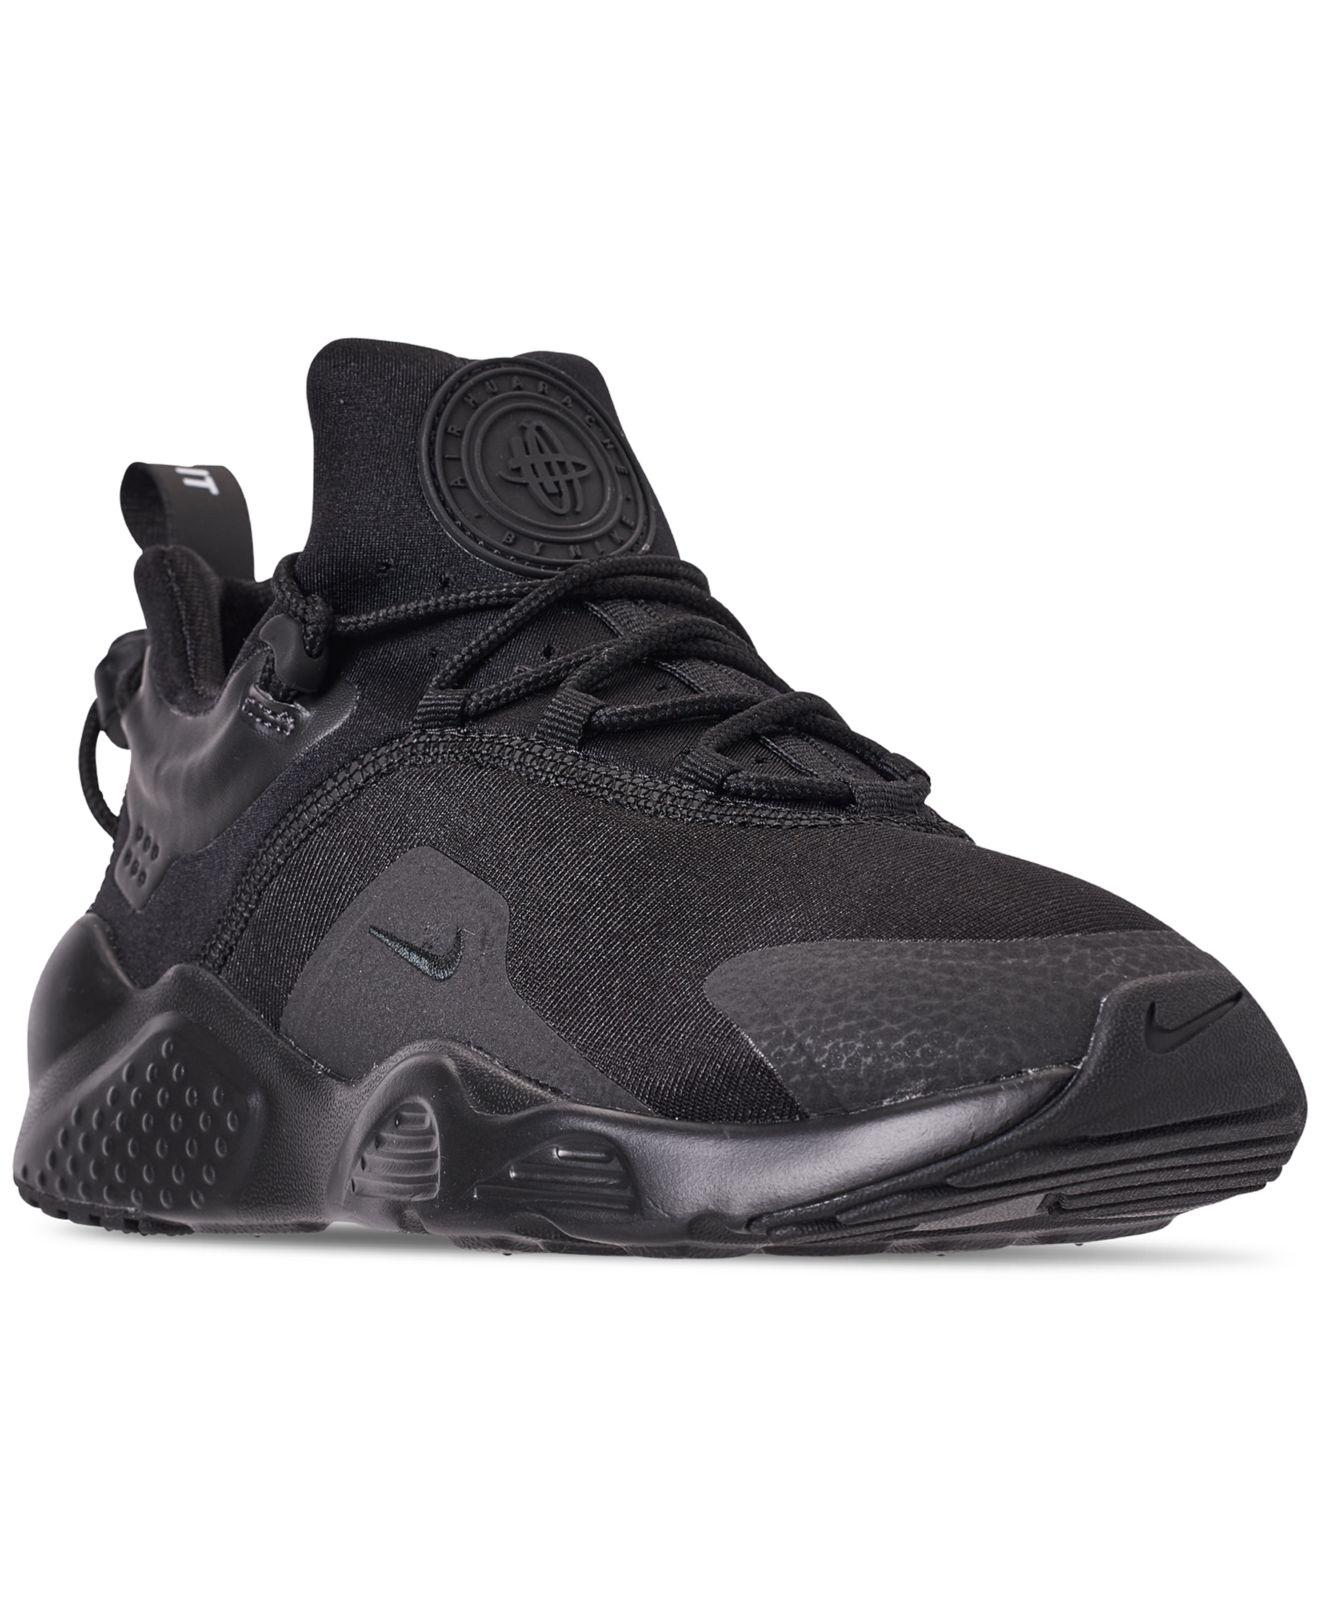 0b7aff5524da Nike. Women s Black Air Huarache City Move Casual Sneakers From Finish Line